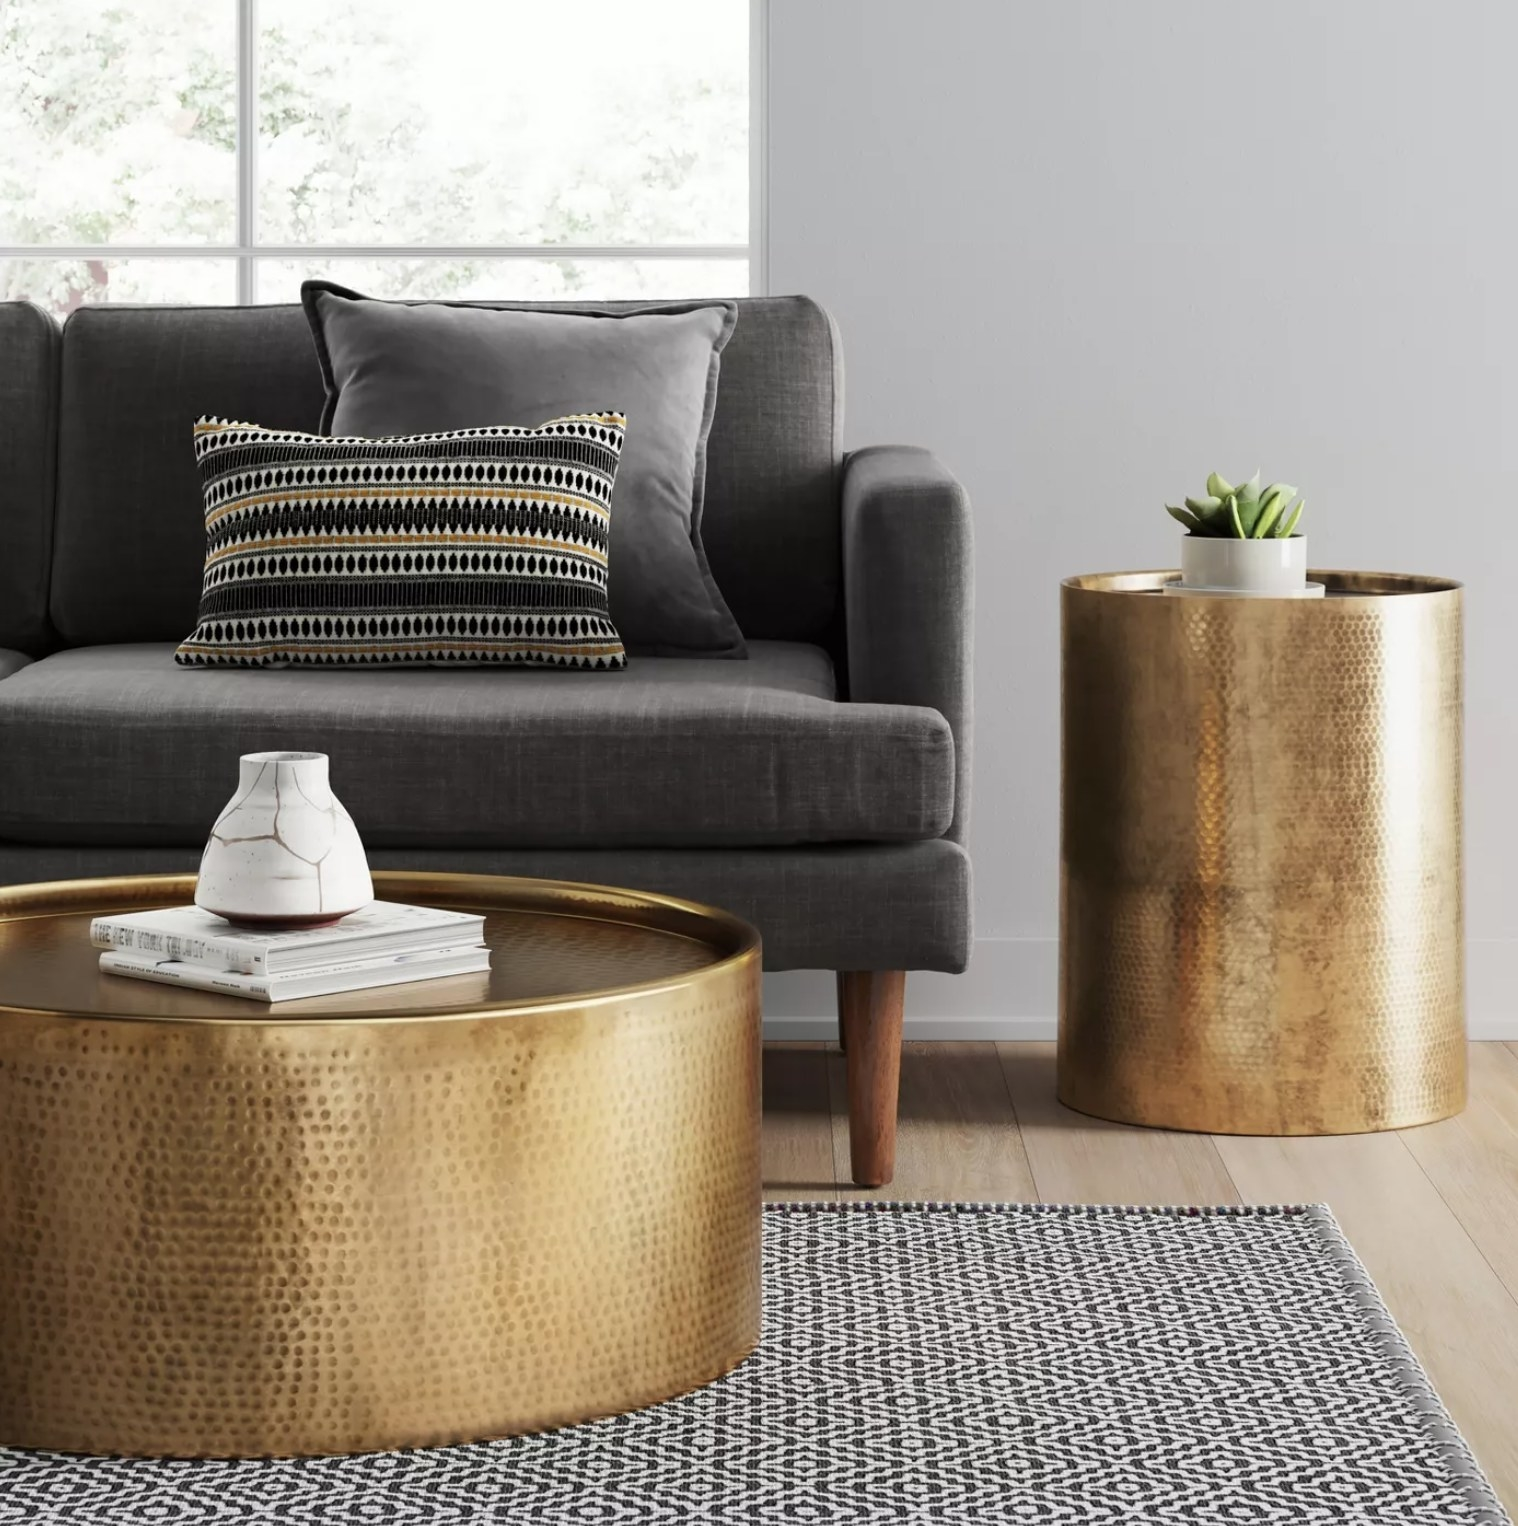 The gold table with a matching coffee table and grey couch